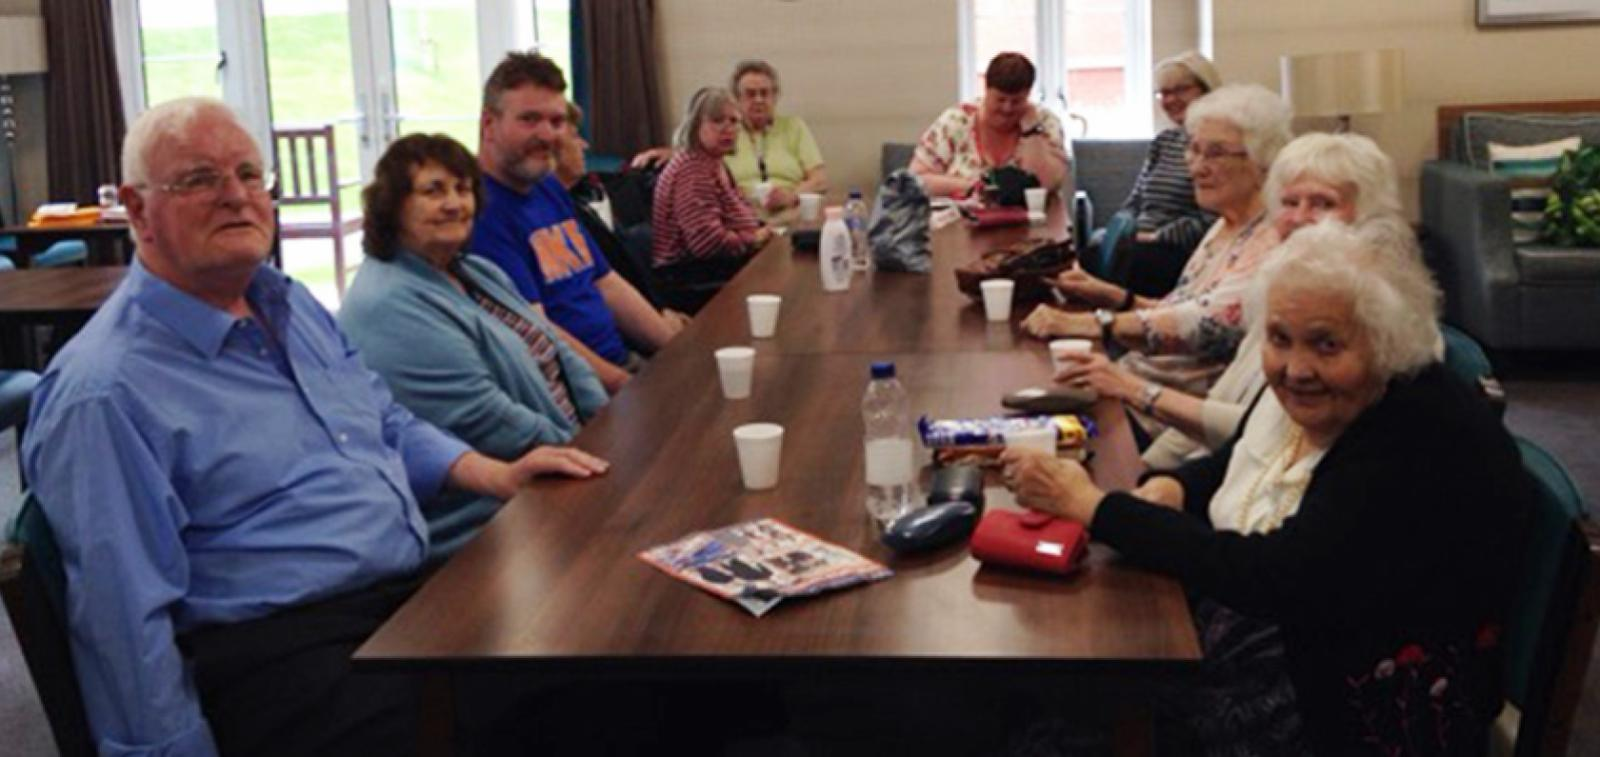 Residents at Moreton Court in Bideford learn about mental wellbeing